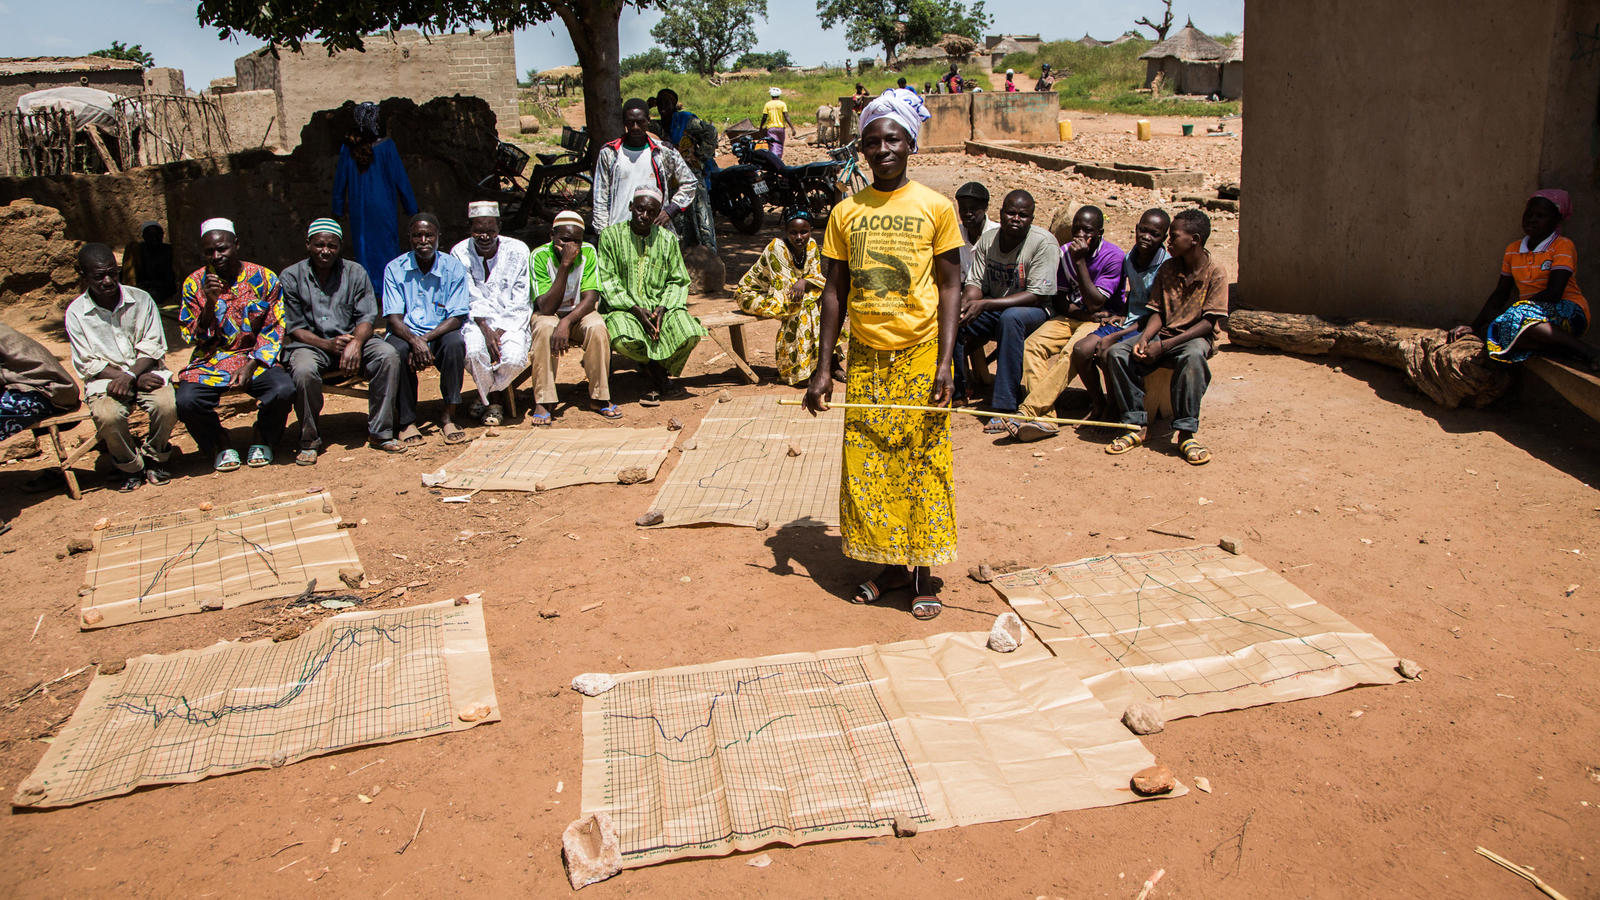 Koudougou displays graphs charting monthly rainfall and well water level in Basbedo, Burkina Faso